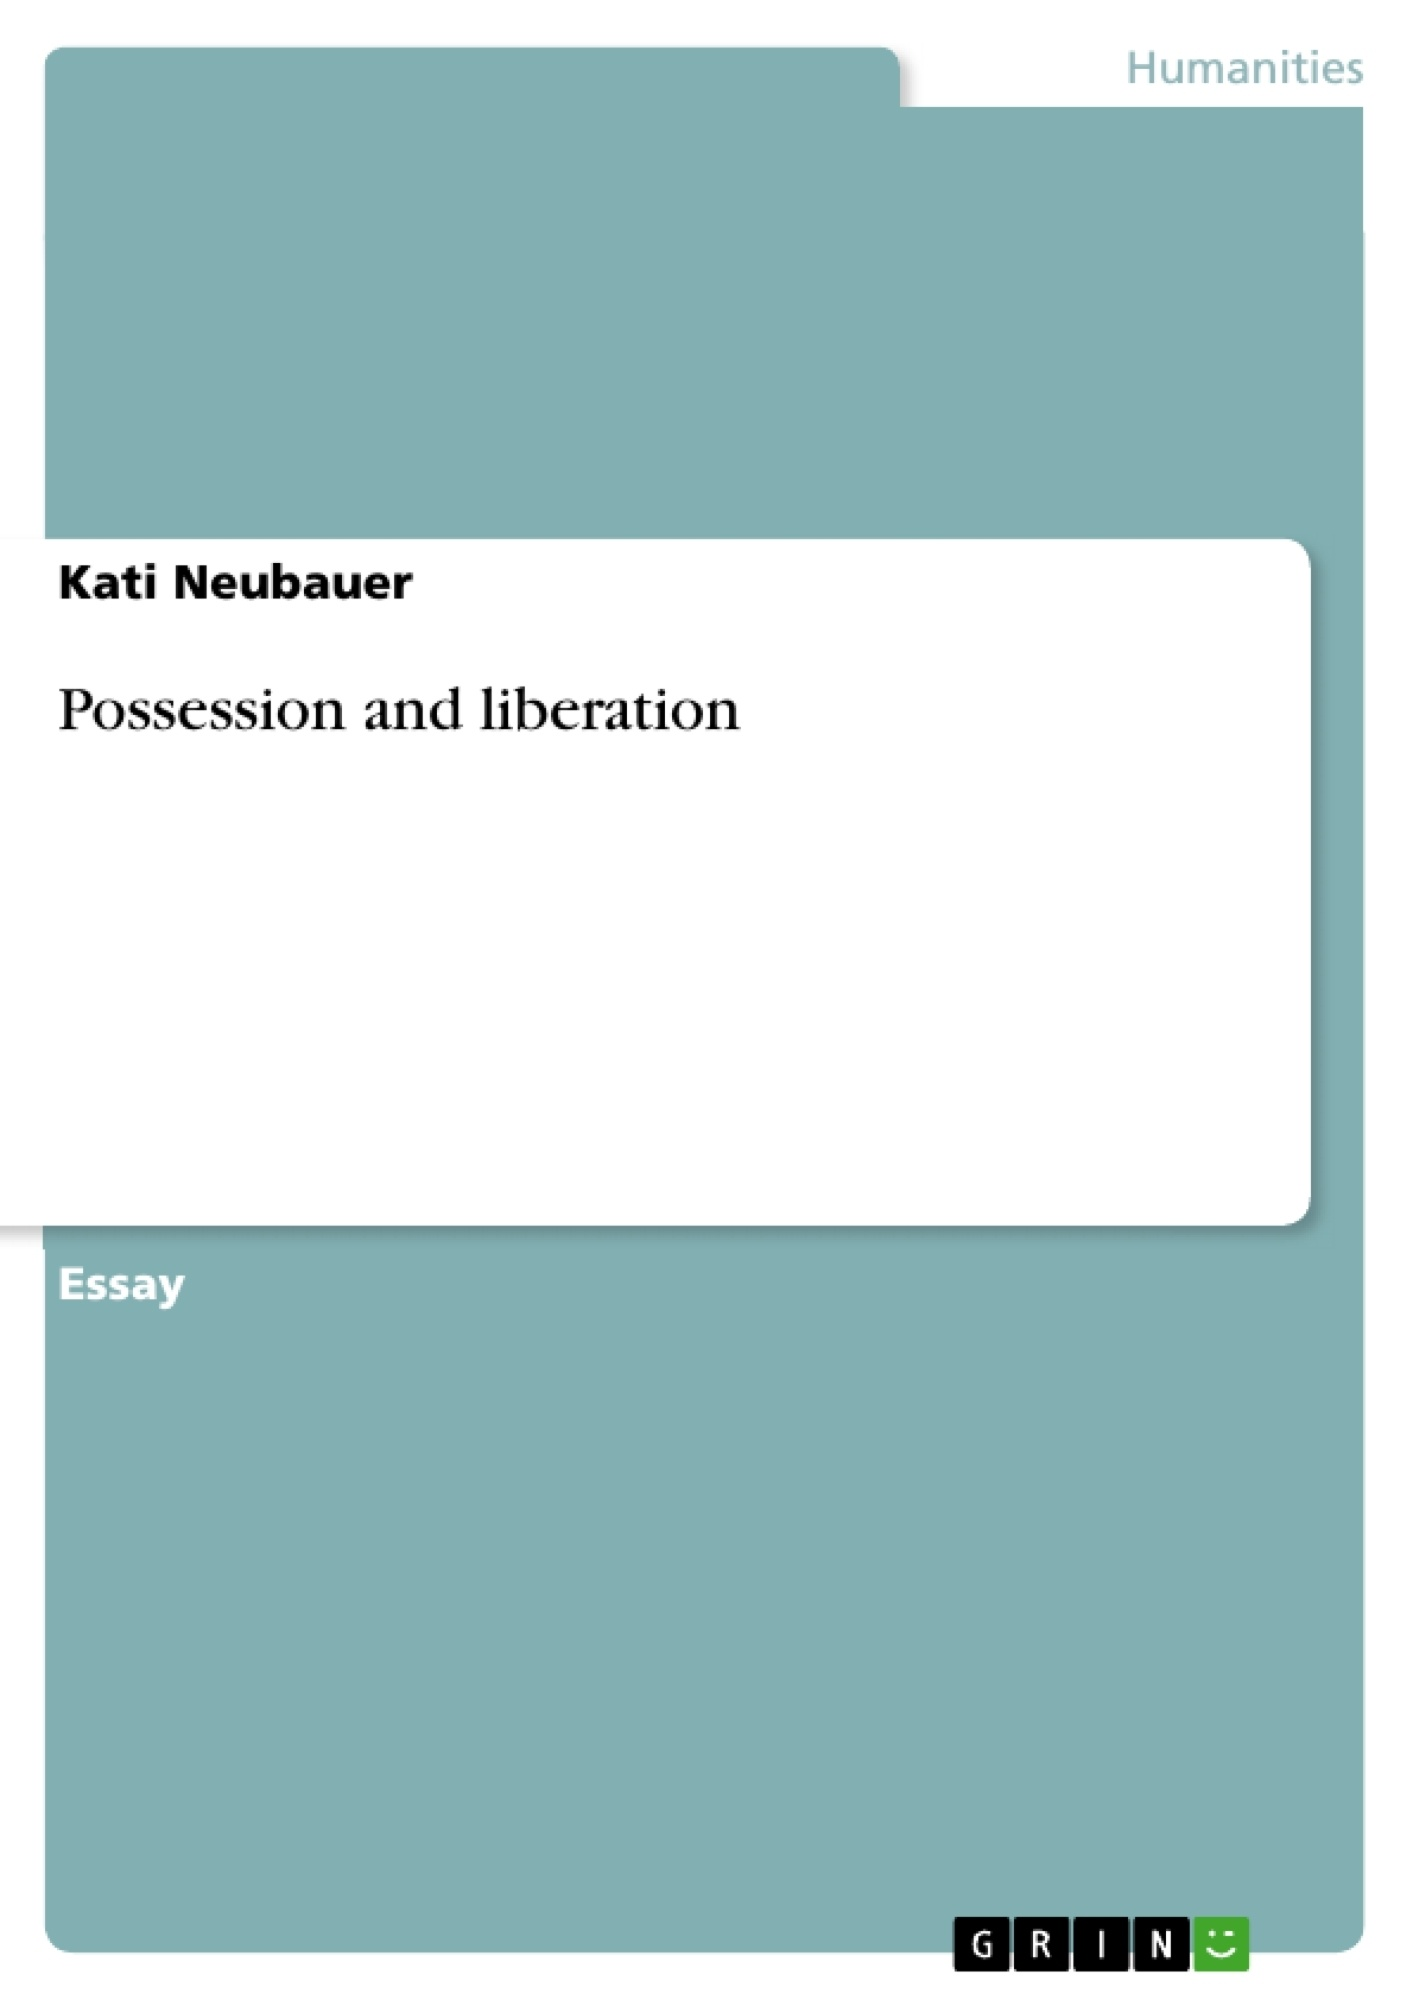 Title: Possession and liberation